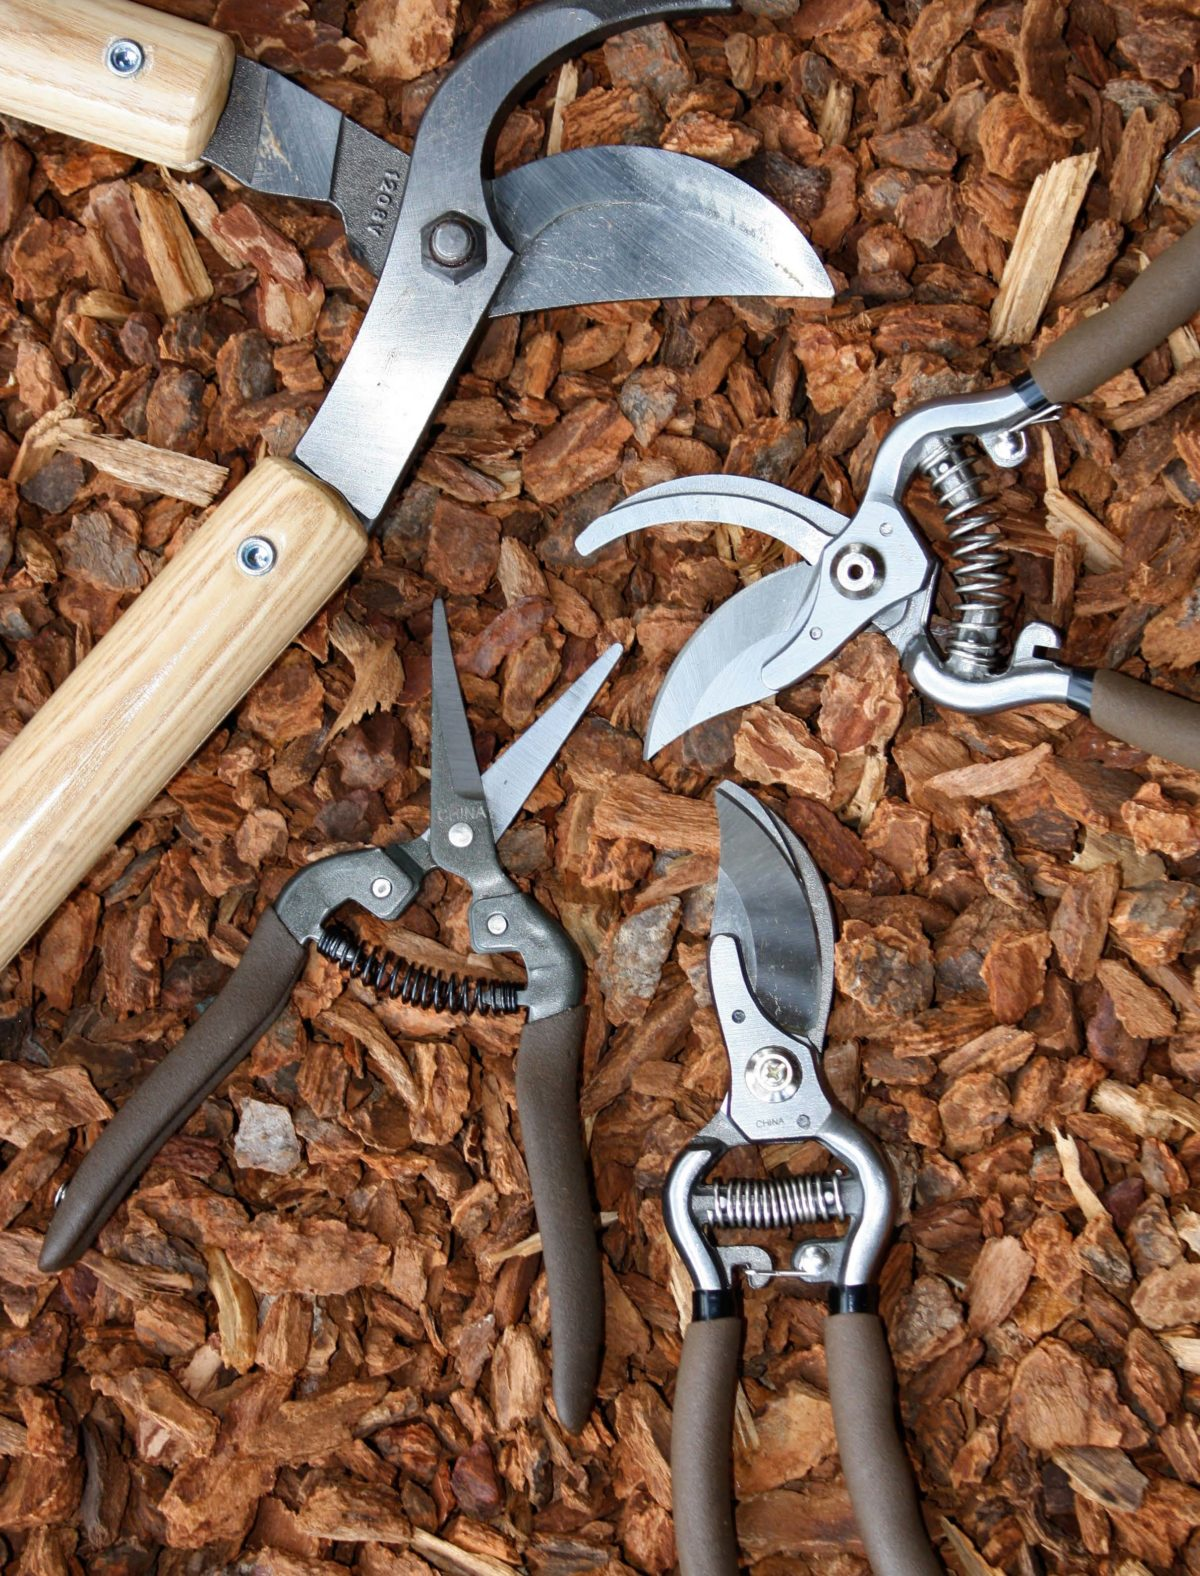 An image of garden clippers pruning shears